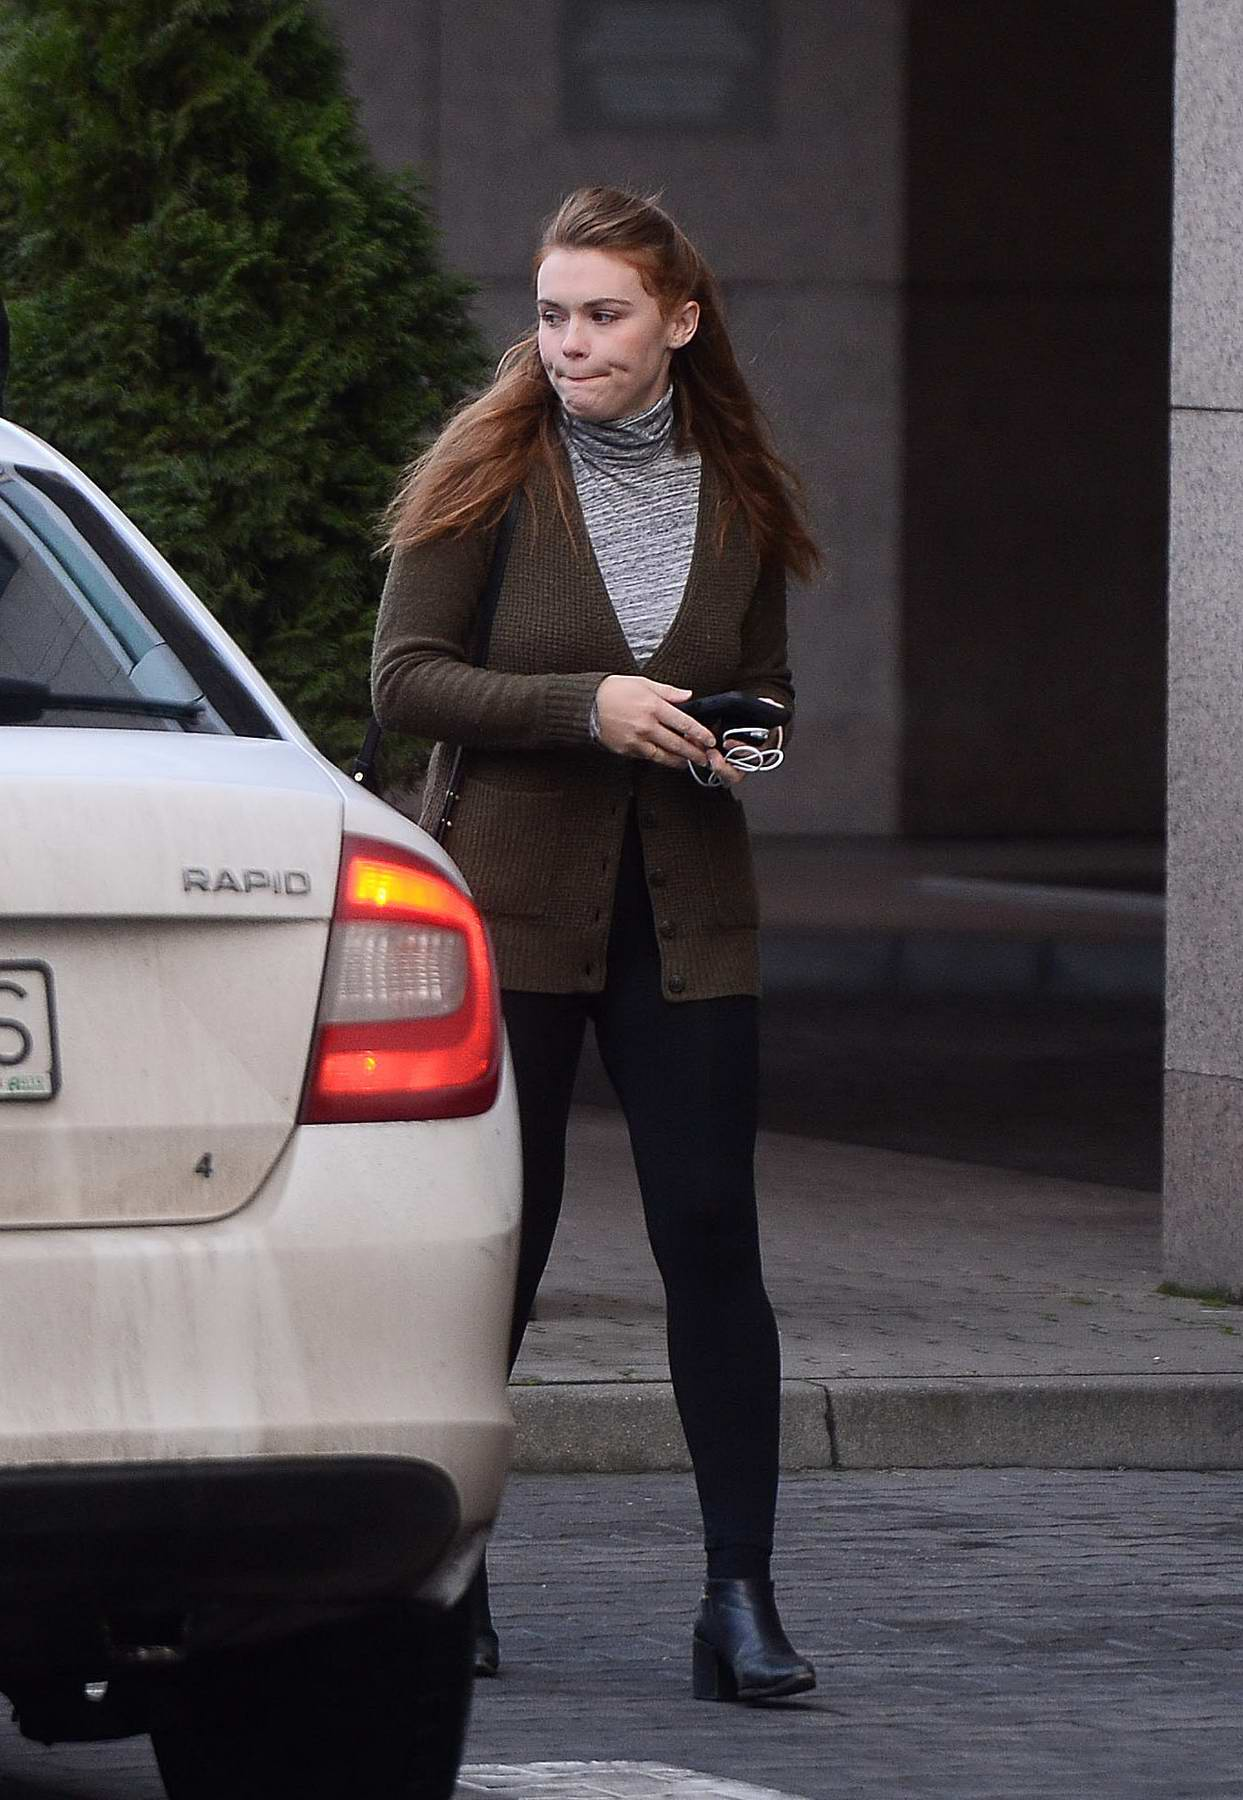 Holland Roden spotted leaving a hotel in Warsaw, Poland